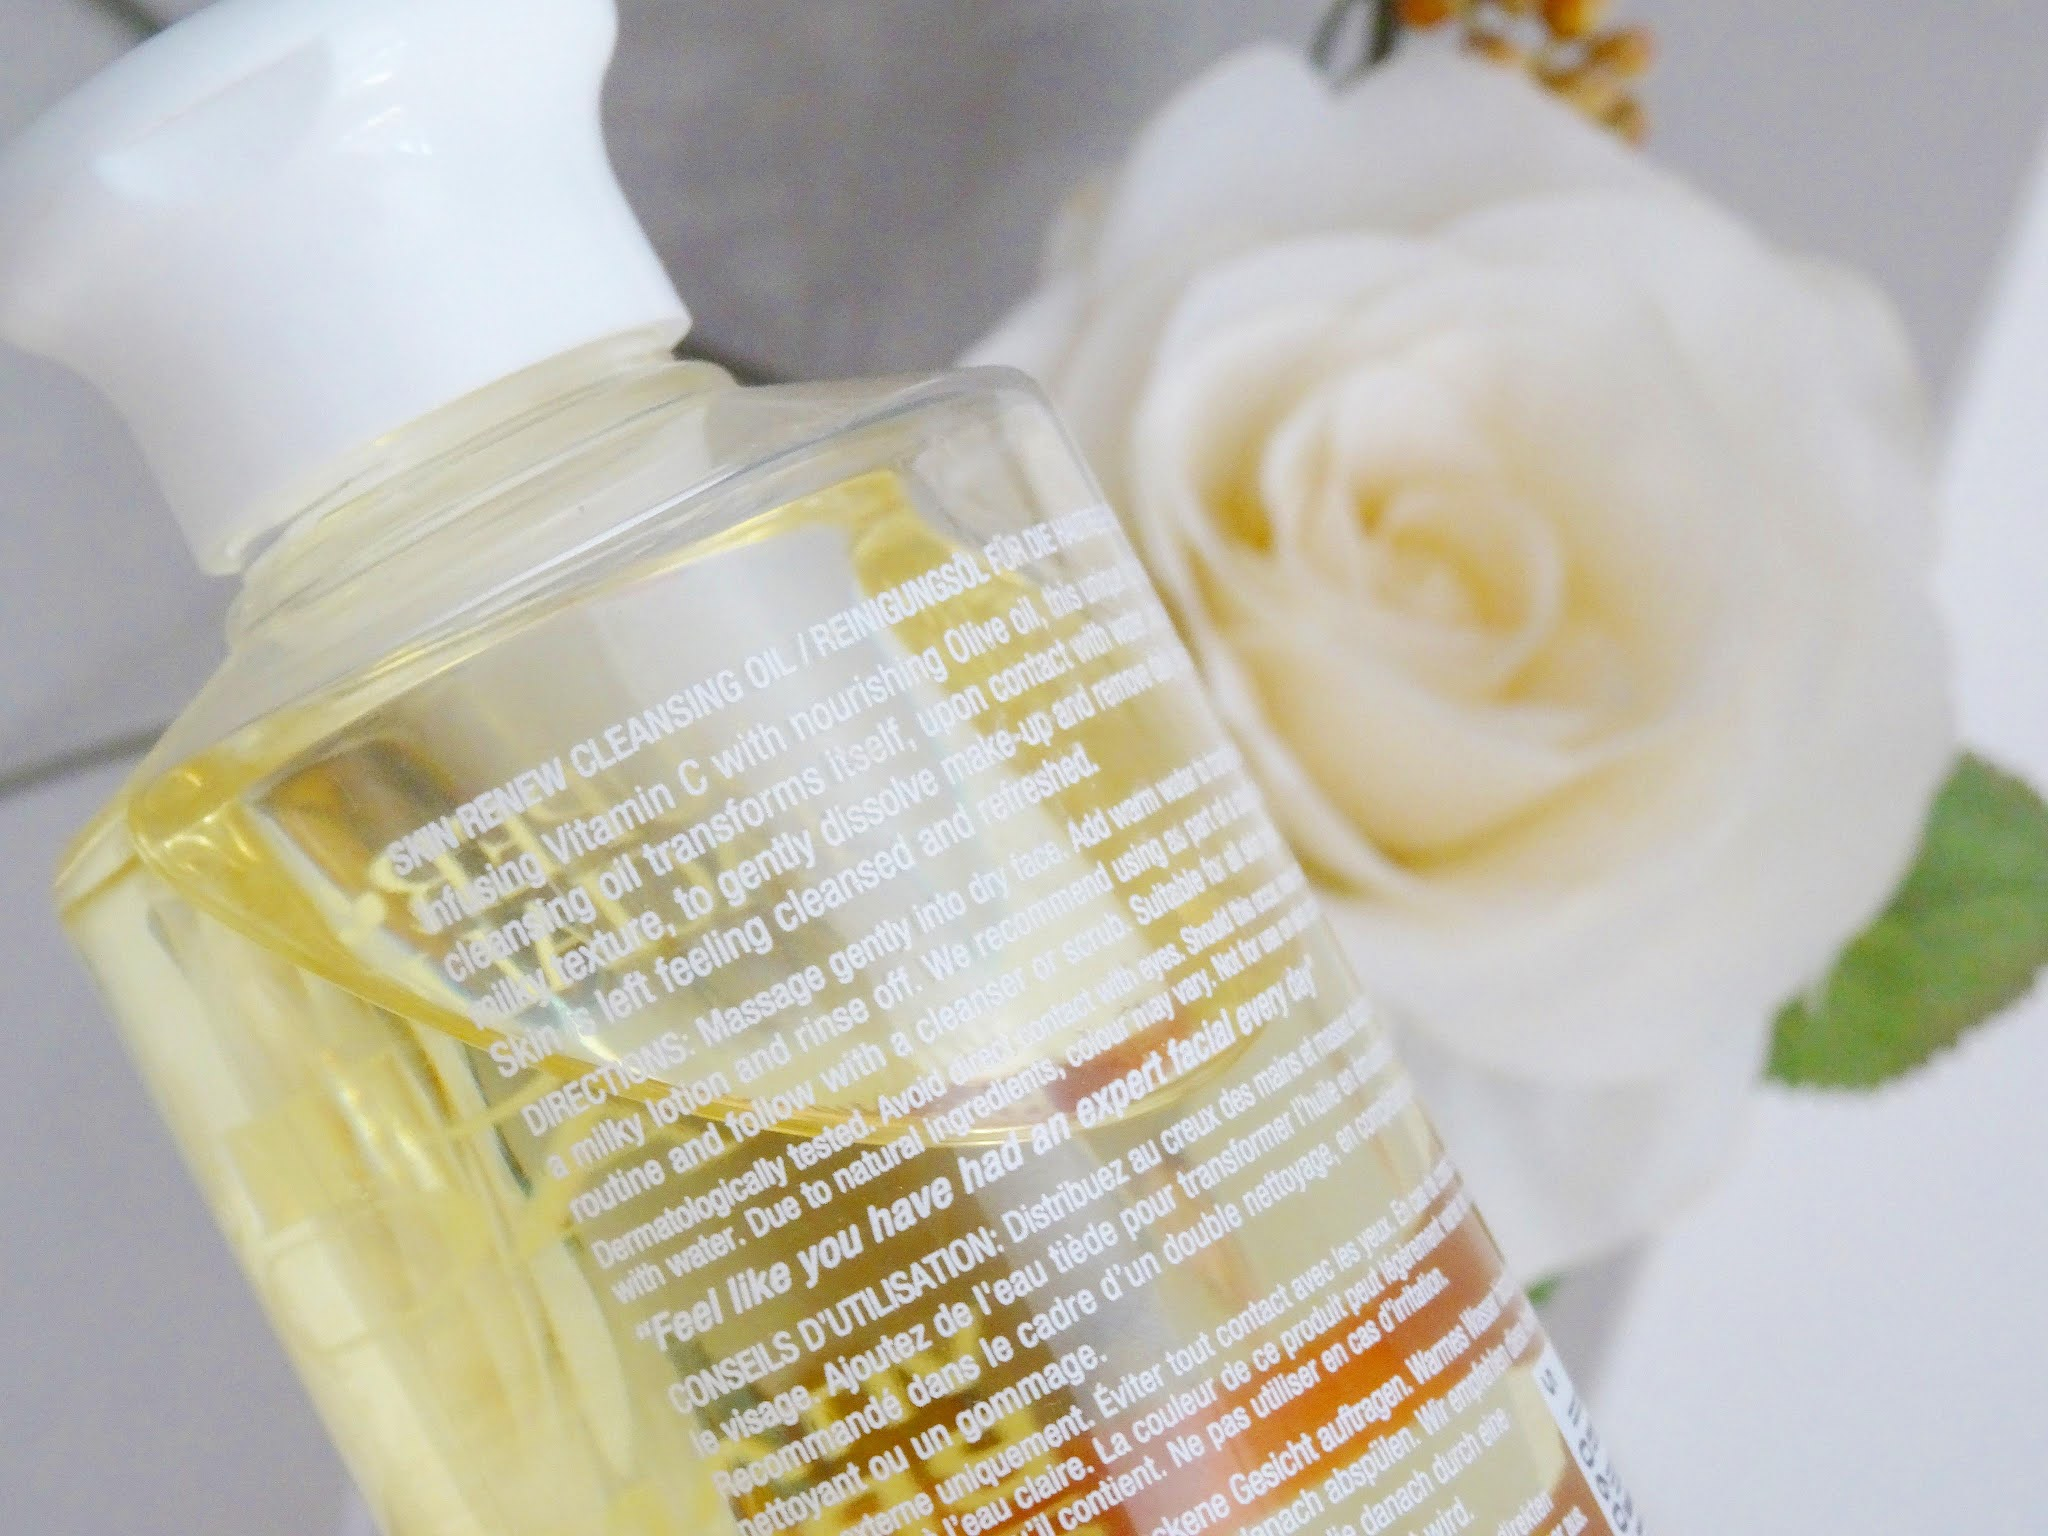 Super Facialist Vitamin C Cleansing Oil Review